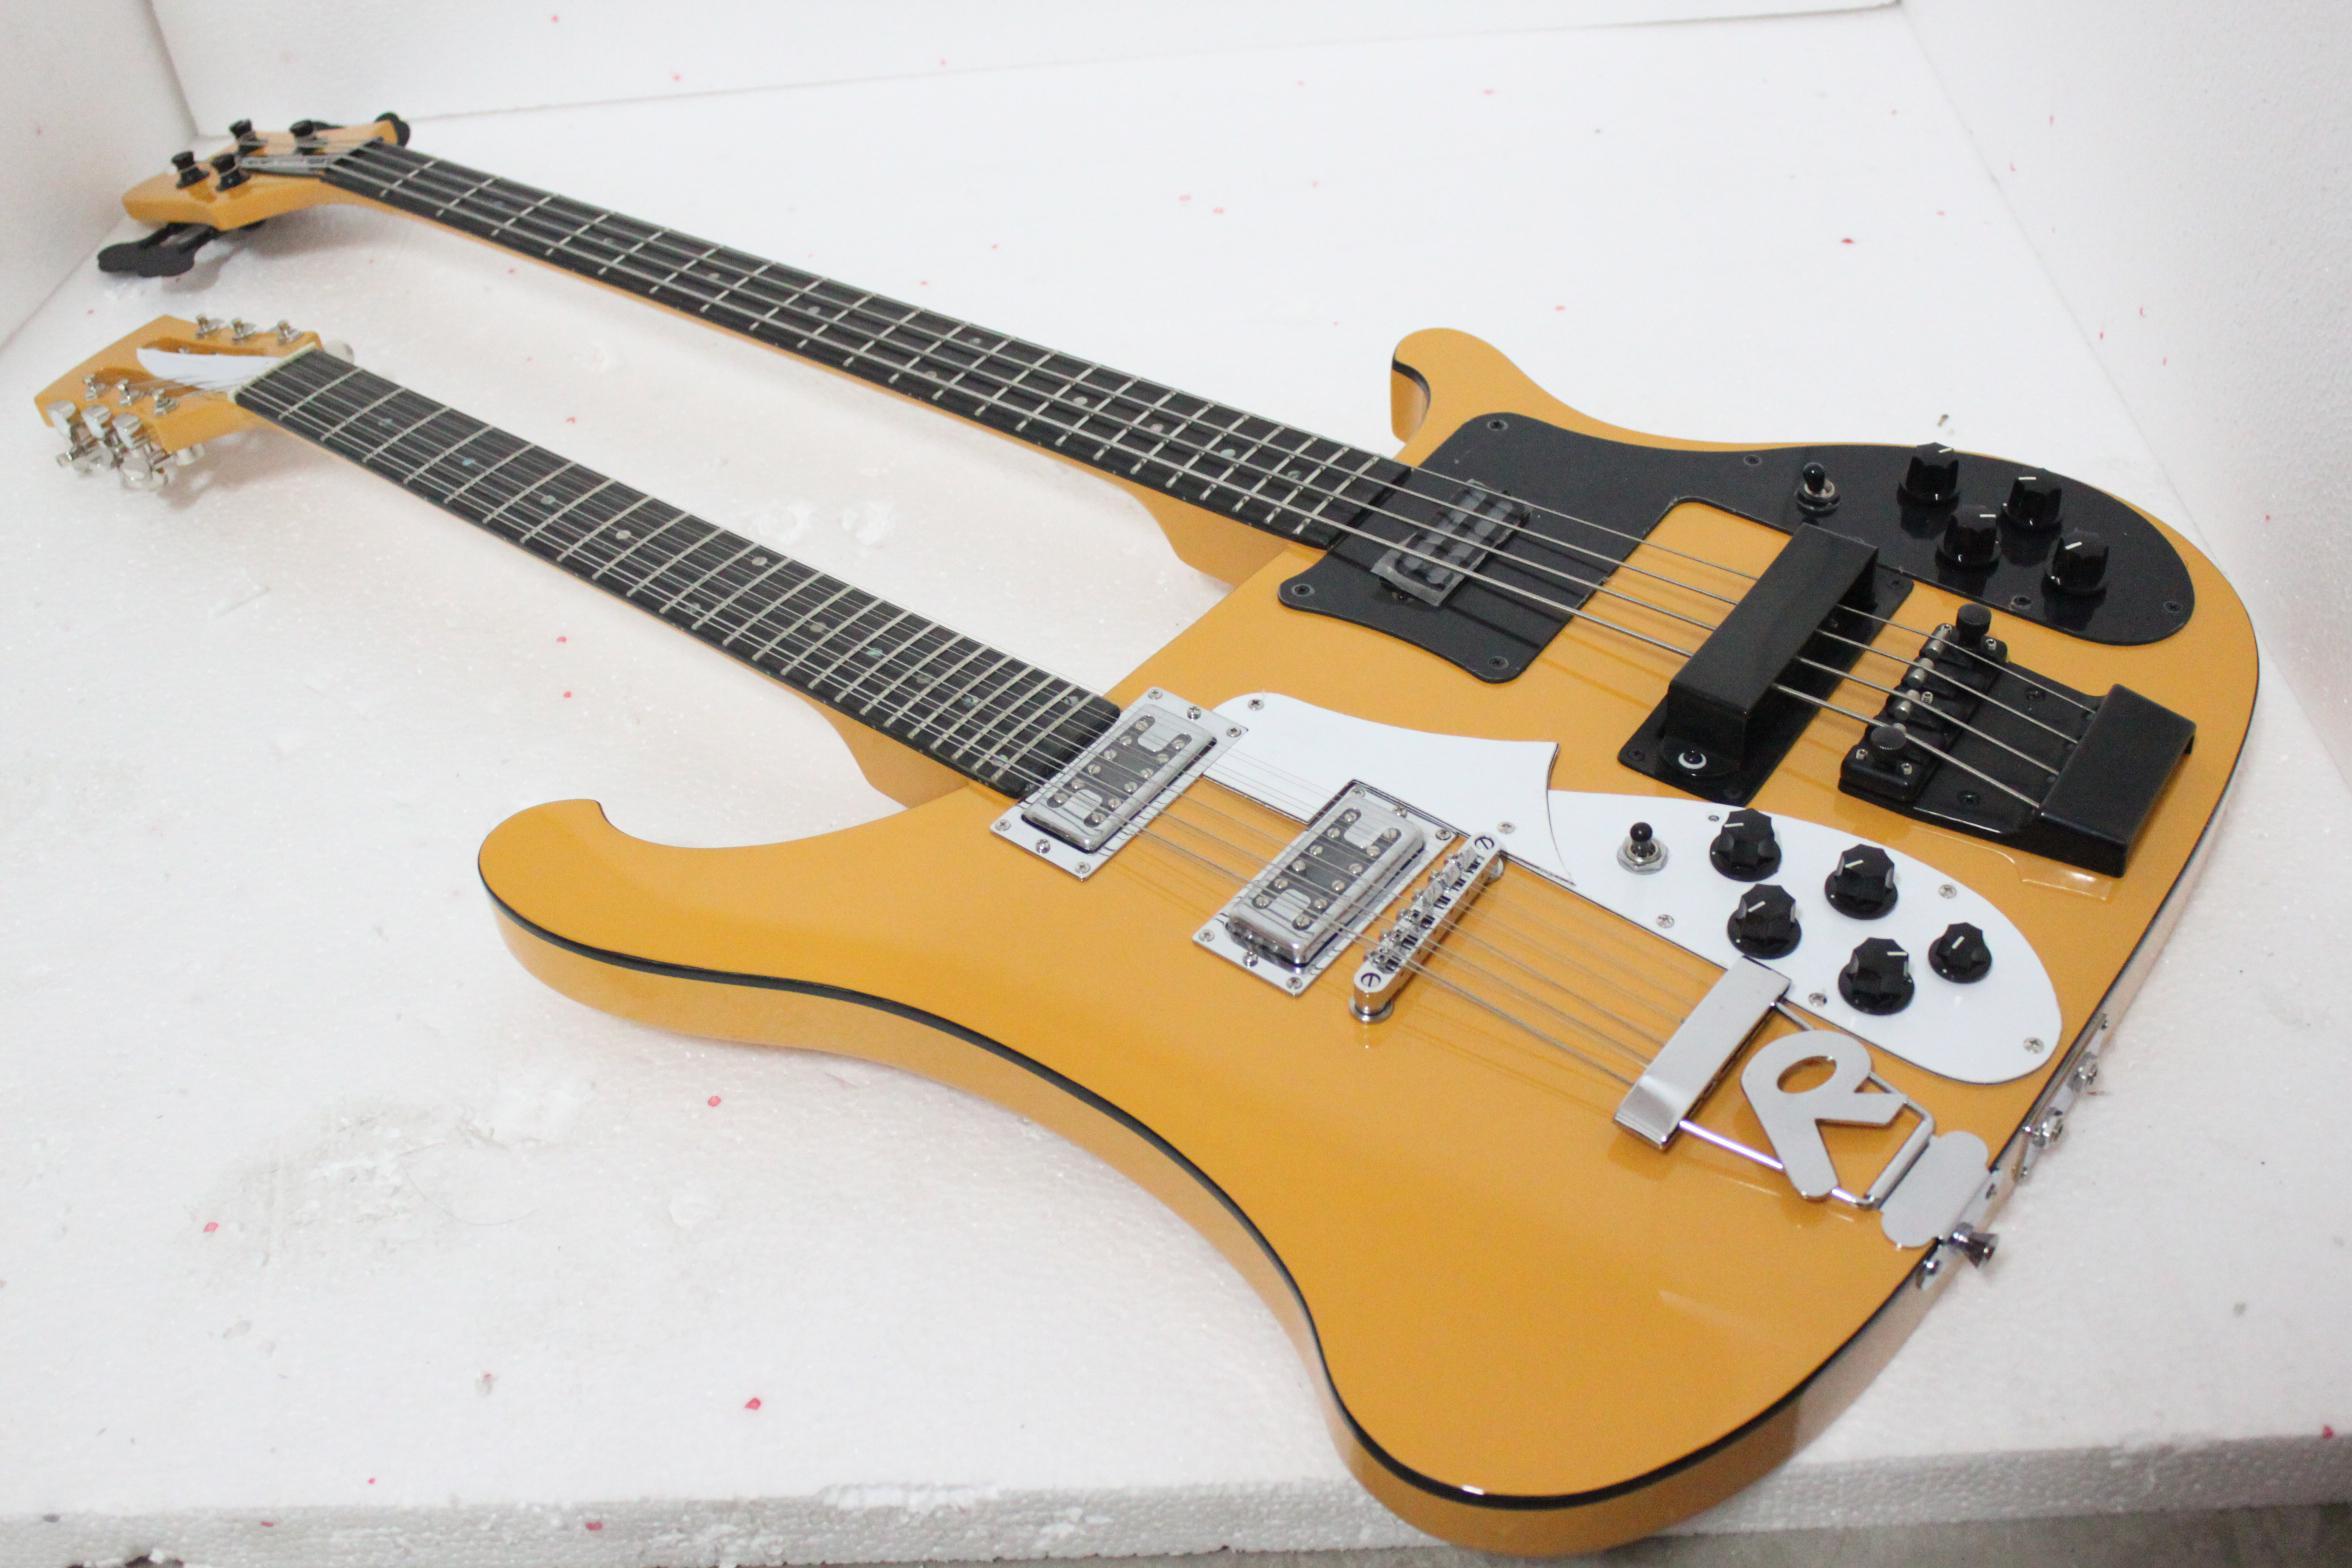 wholesale double neck 4 strings electric beth bass guitar and 12 strings electric guitar. Black Bedroom Furniture Sets. Home Design Ideas